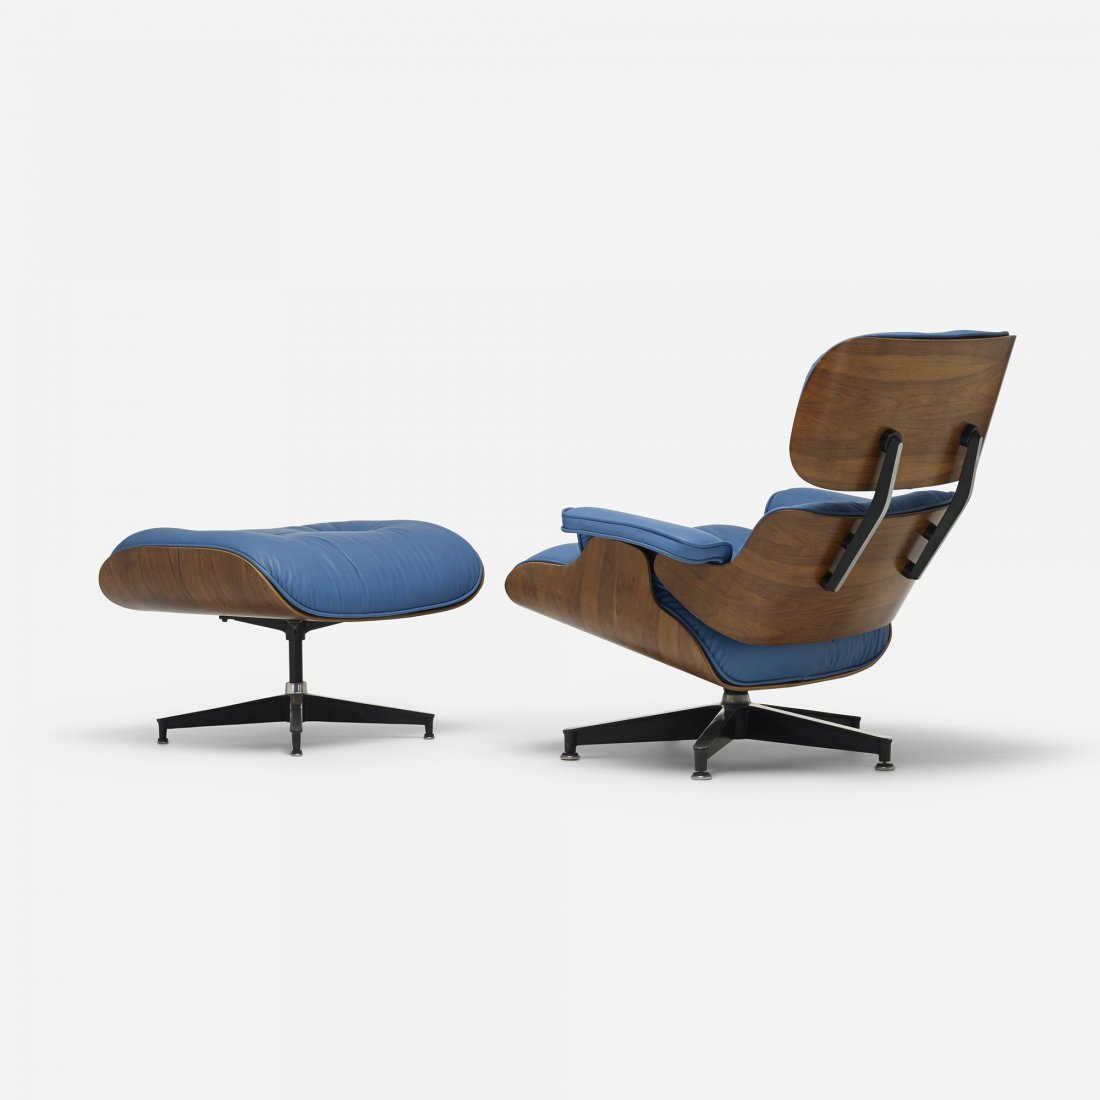 Charles and Ray Eames 670 lounge and 671 ottoman